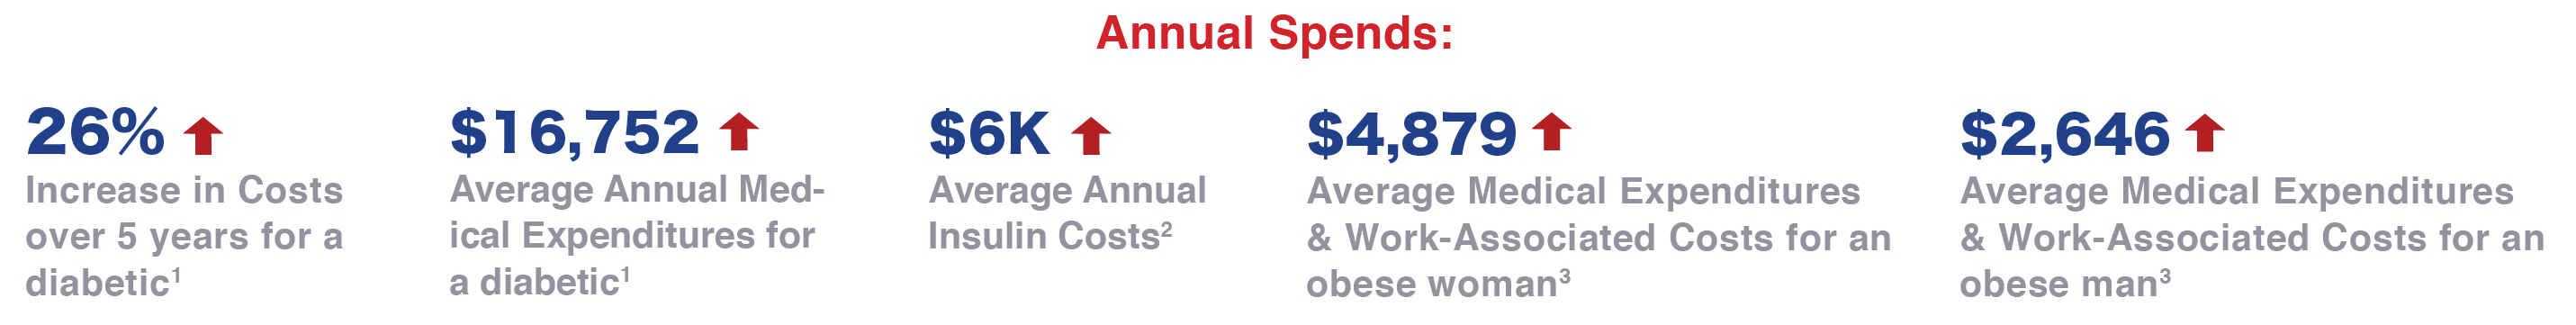 Annual Spends Increases